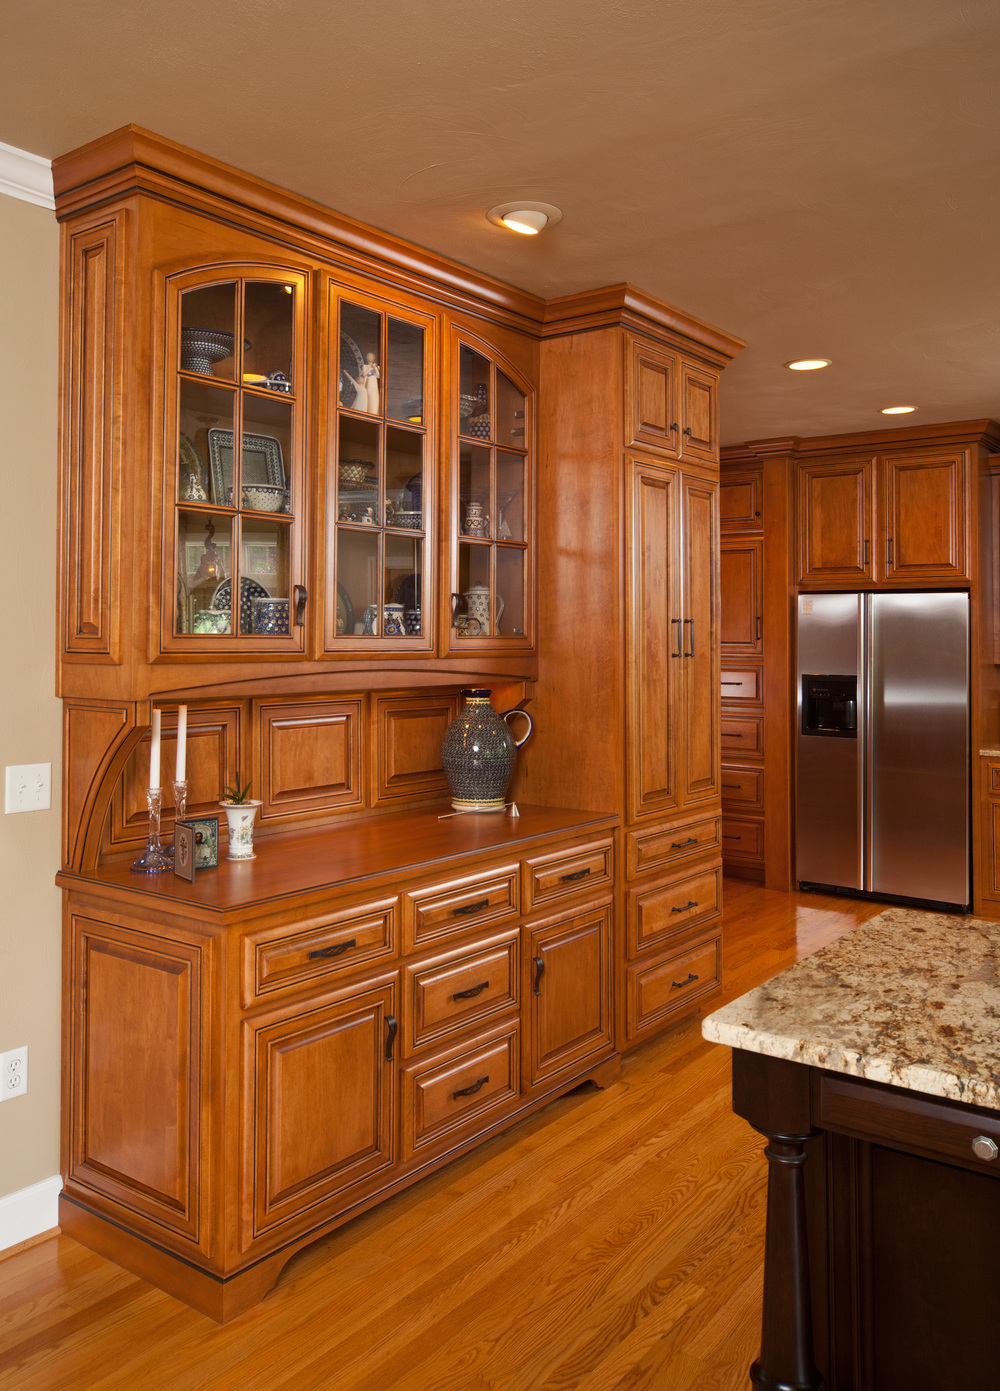 Cabinets_kitchen.jpg